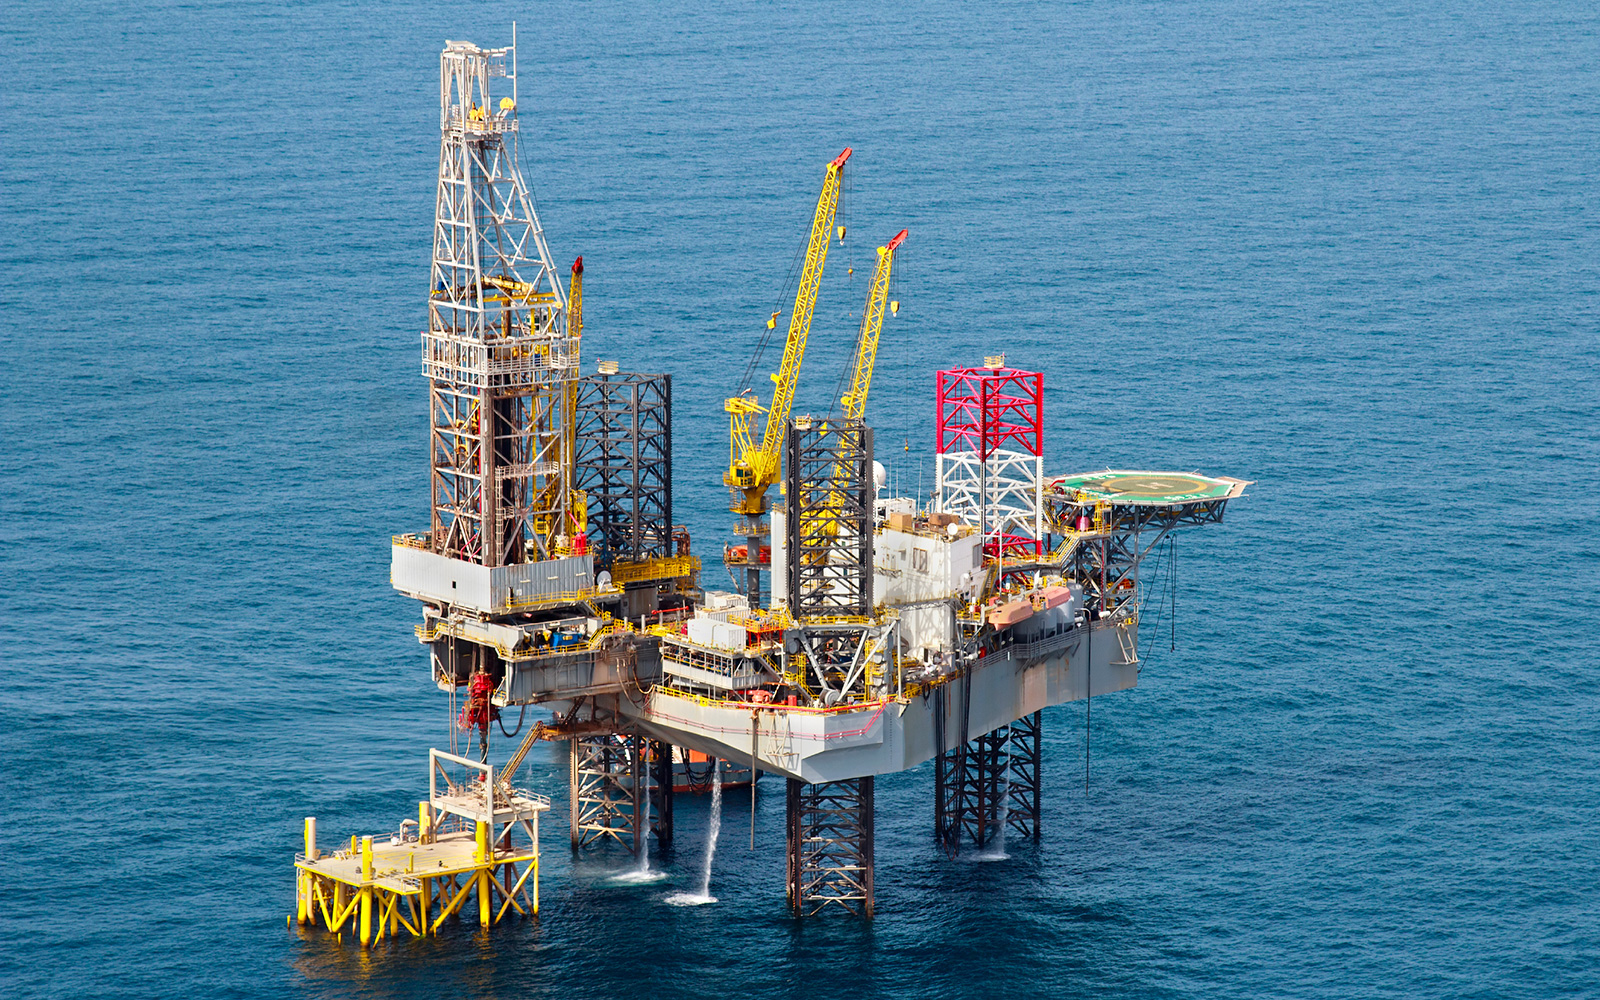 Aerial view of large oil offshore drilling platform surrounded by ocean